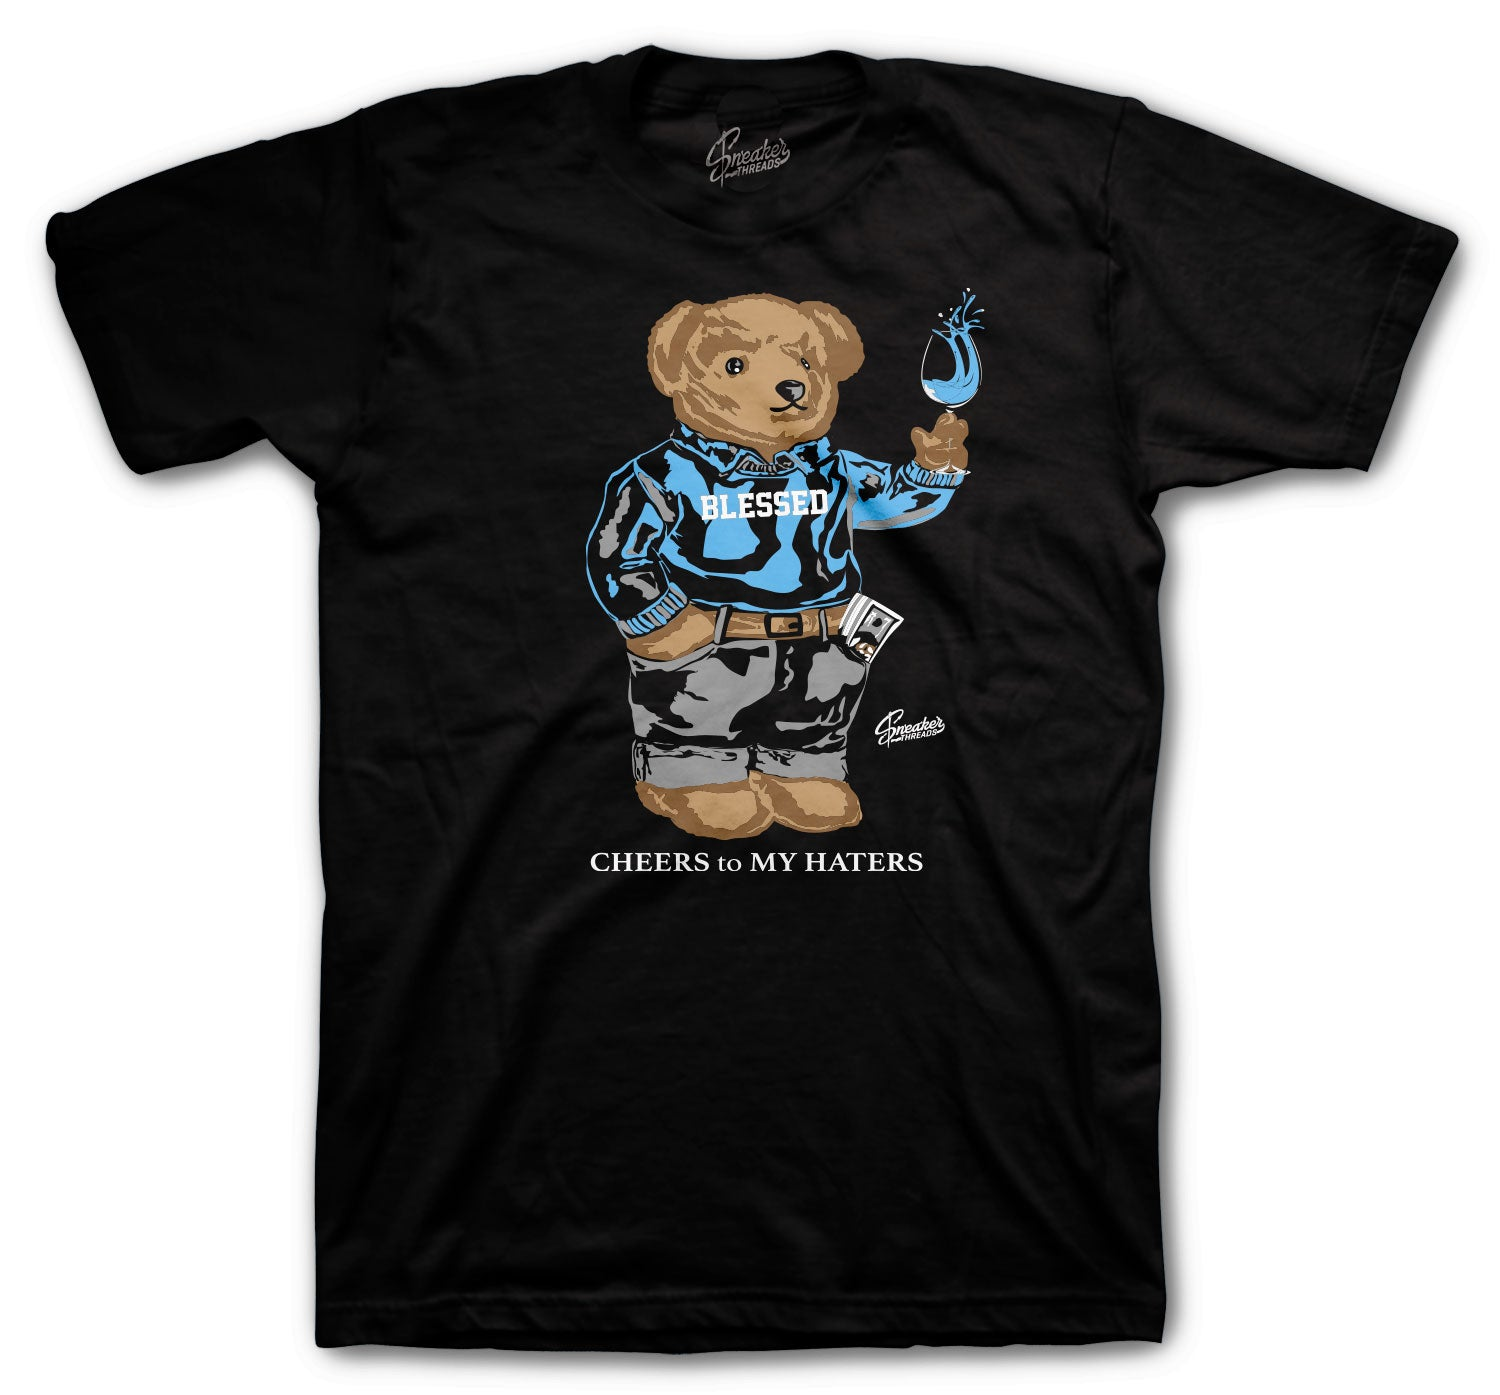 Jordan 9 University Blue Shirt - Cheers Bear - Black